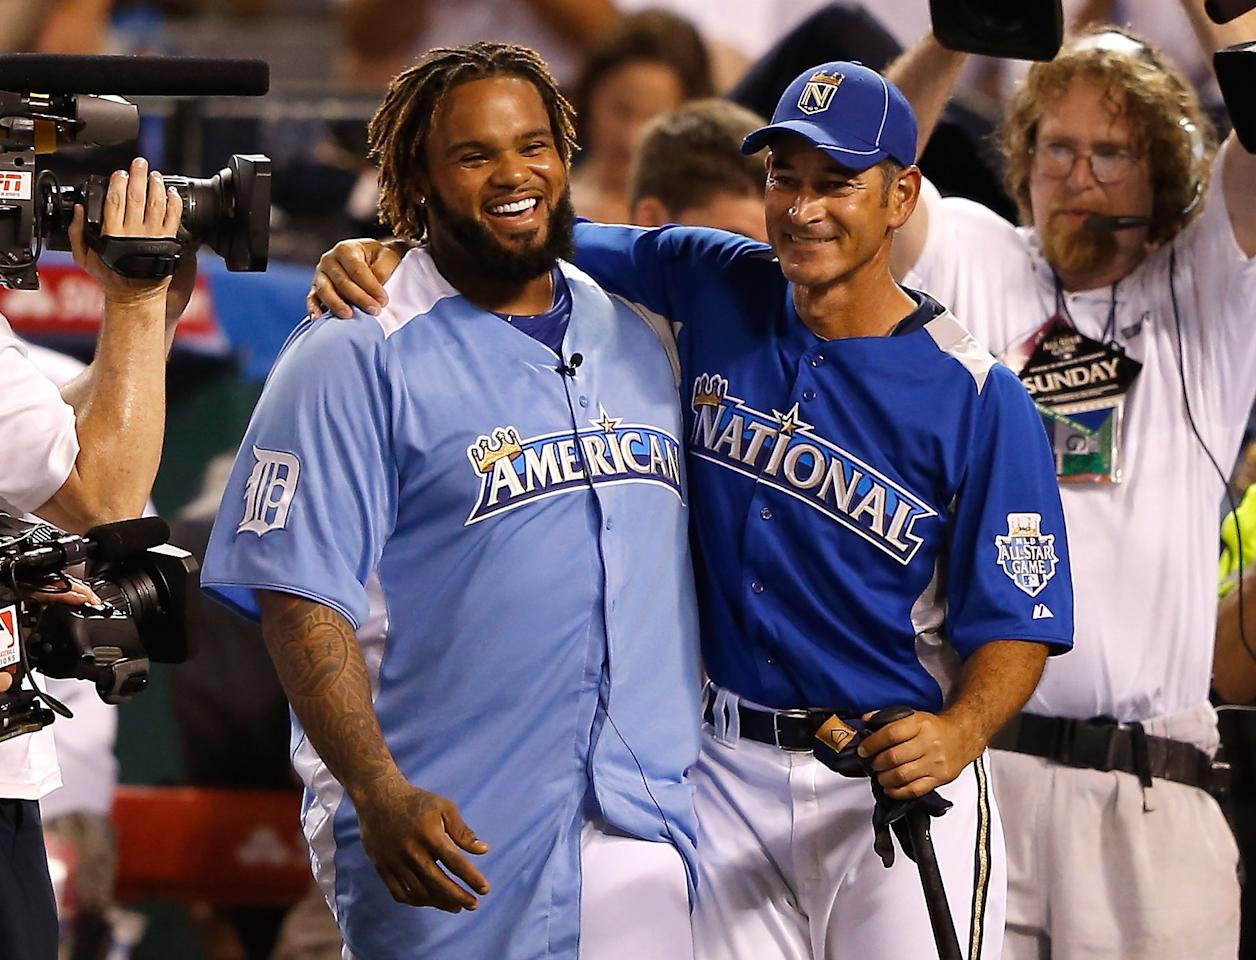 KANSAS CITY, MO - JULY 09:  American League All-Star Prince Fielder #28 of the Detroit Tigers celebrates with pitcher Sandy Guerrero after winning the State Farm Home Run Derby at Kauffman Stadium on July 9, 2012 in Kansas City, Missouri.  (Photo by Jamie Squire/Getty Images)